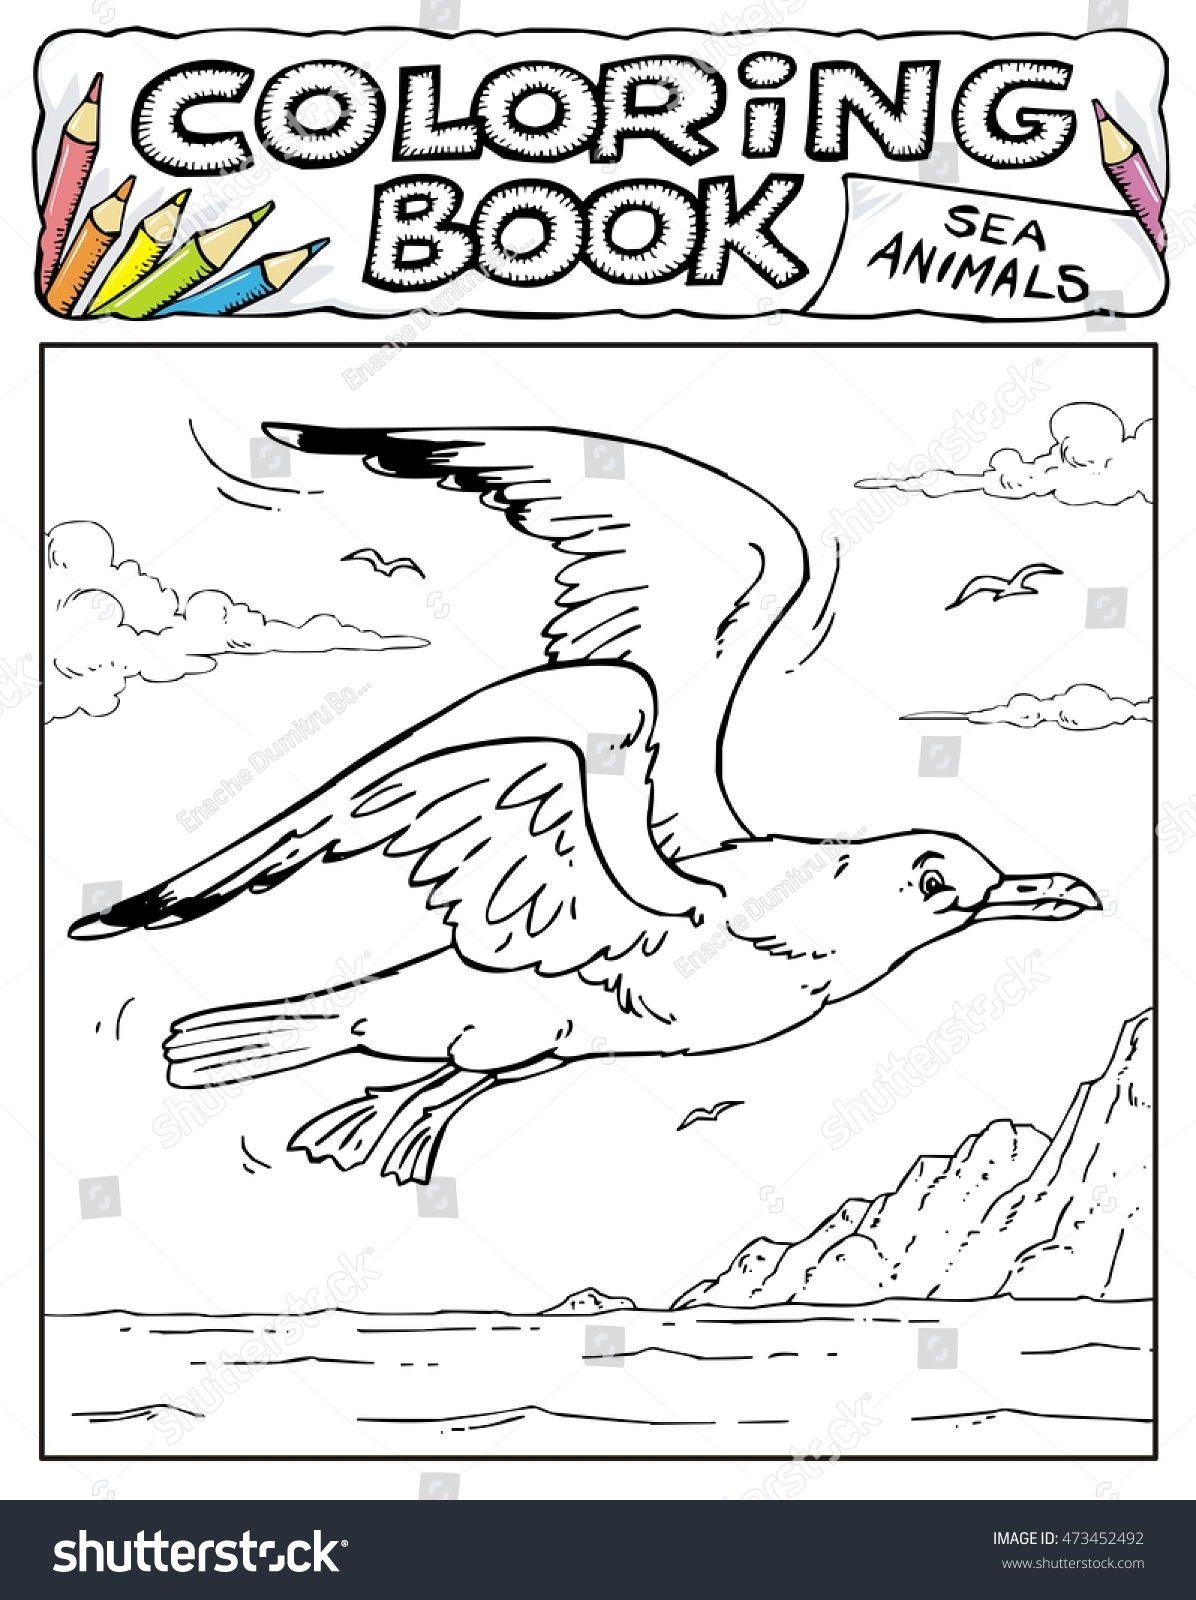 Seagull Coloring Book Pages Sea Animals Stock Vector 473452492